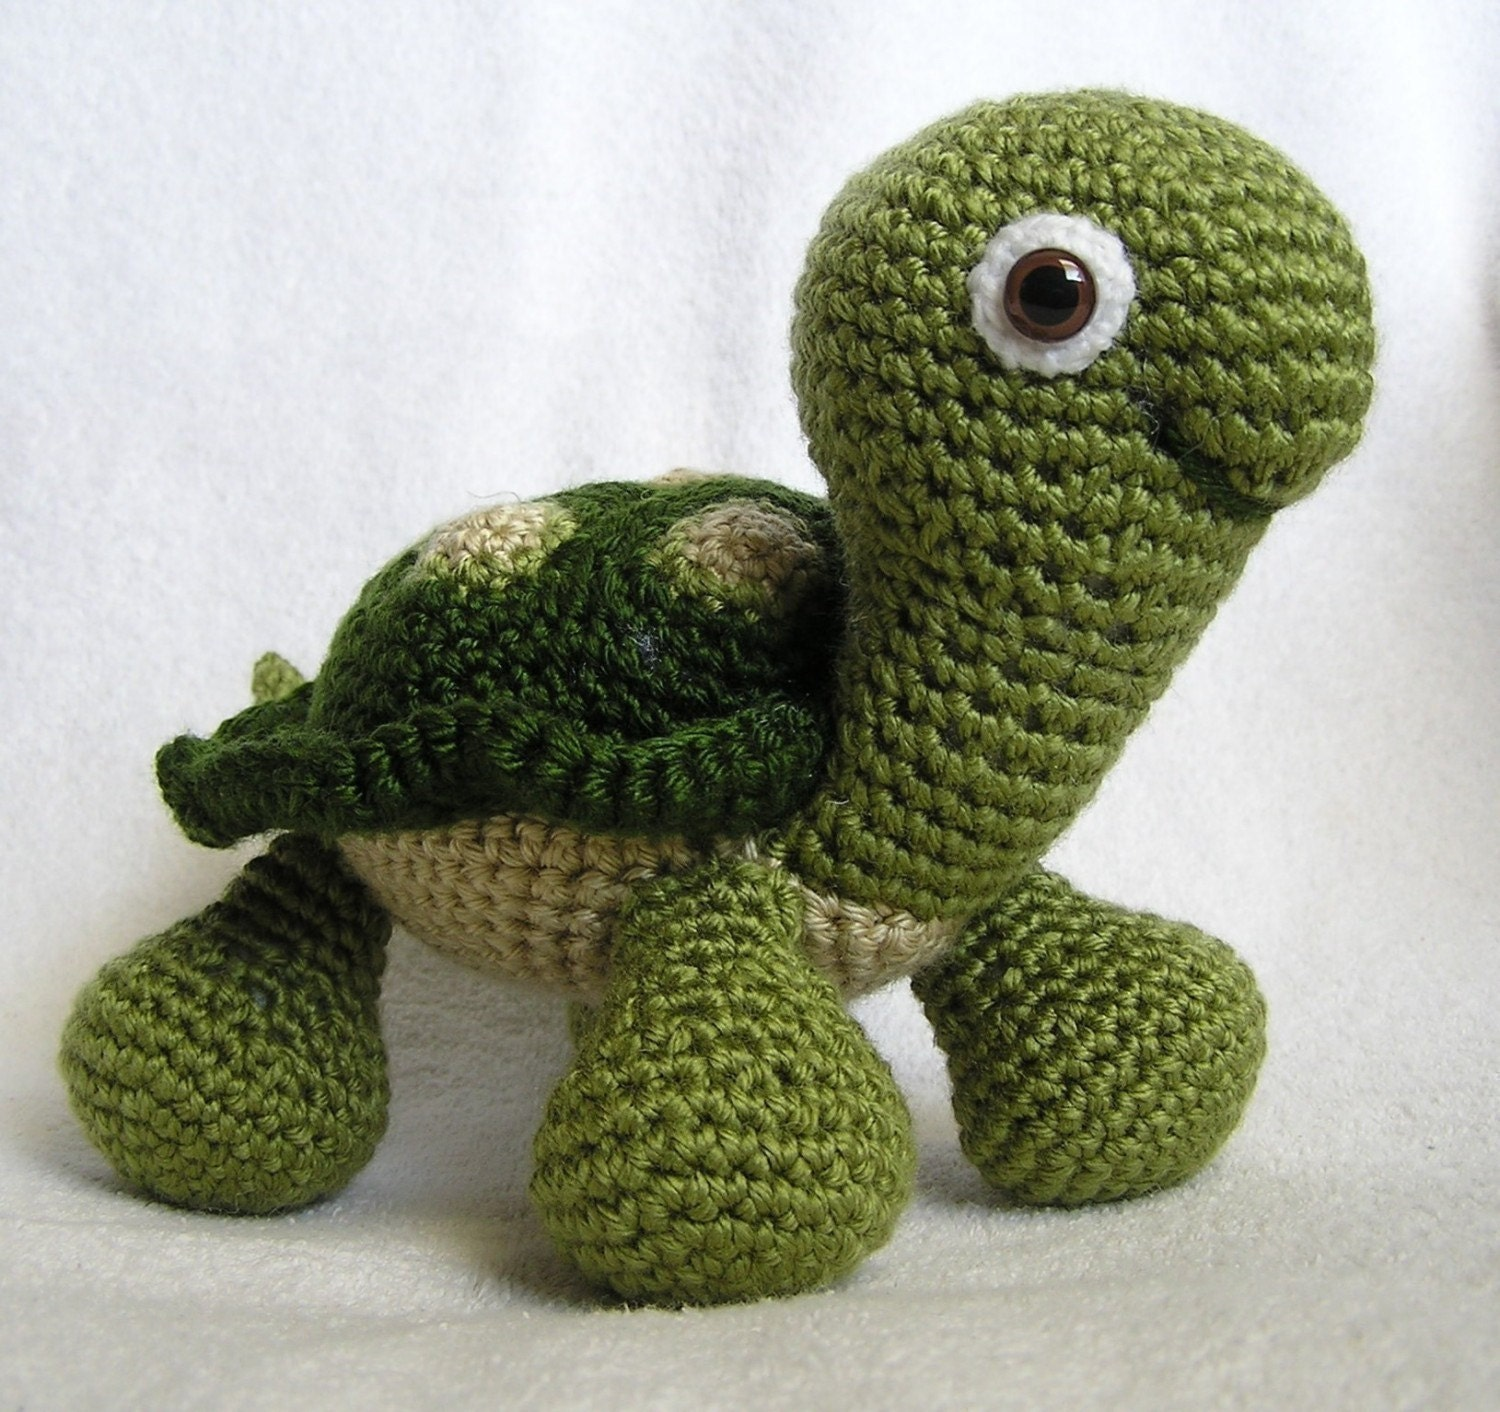 Crochet Patterns Etsy : BABY TURTLE PDF Crochet Pattern by bvoe668 on Etsy